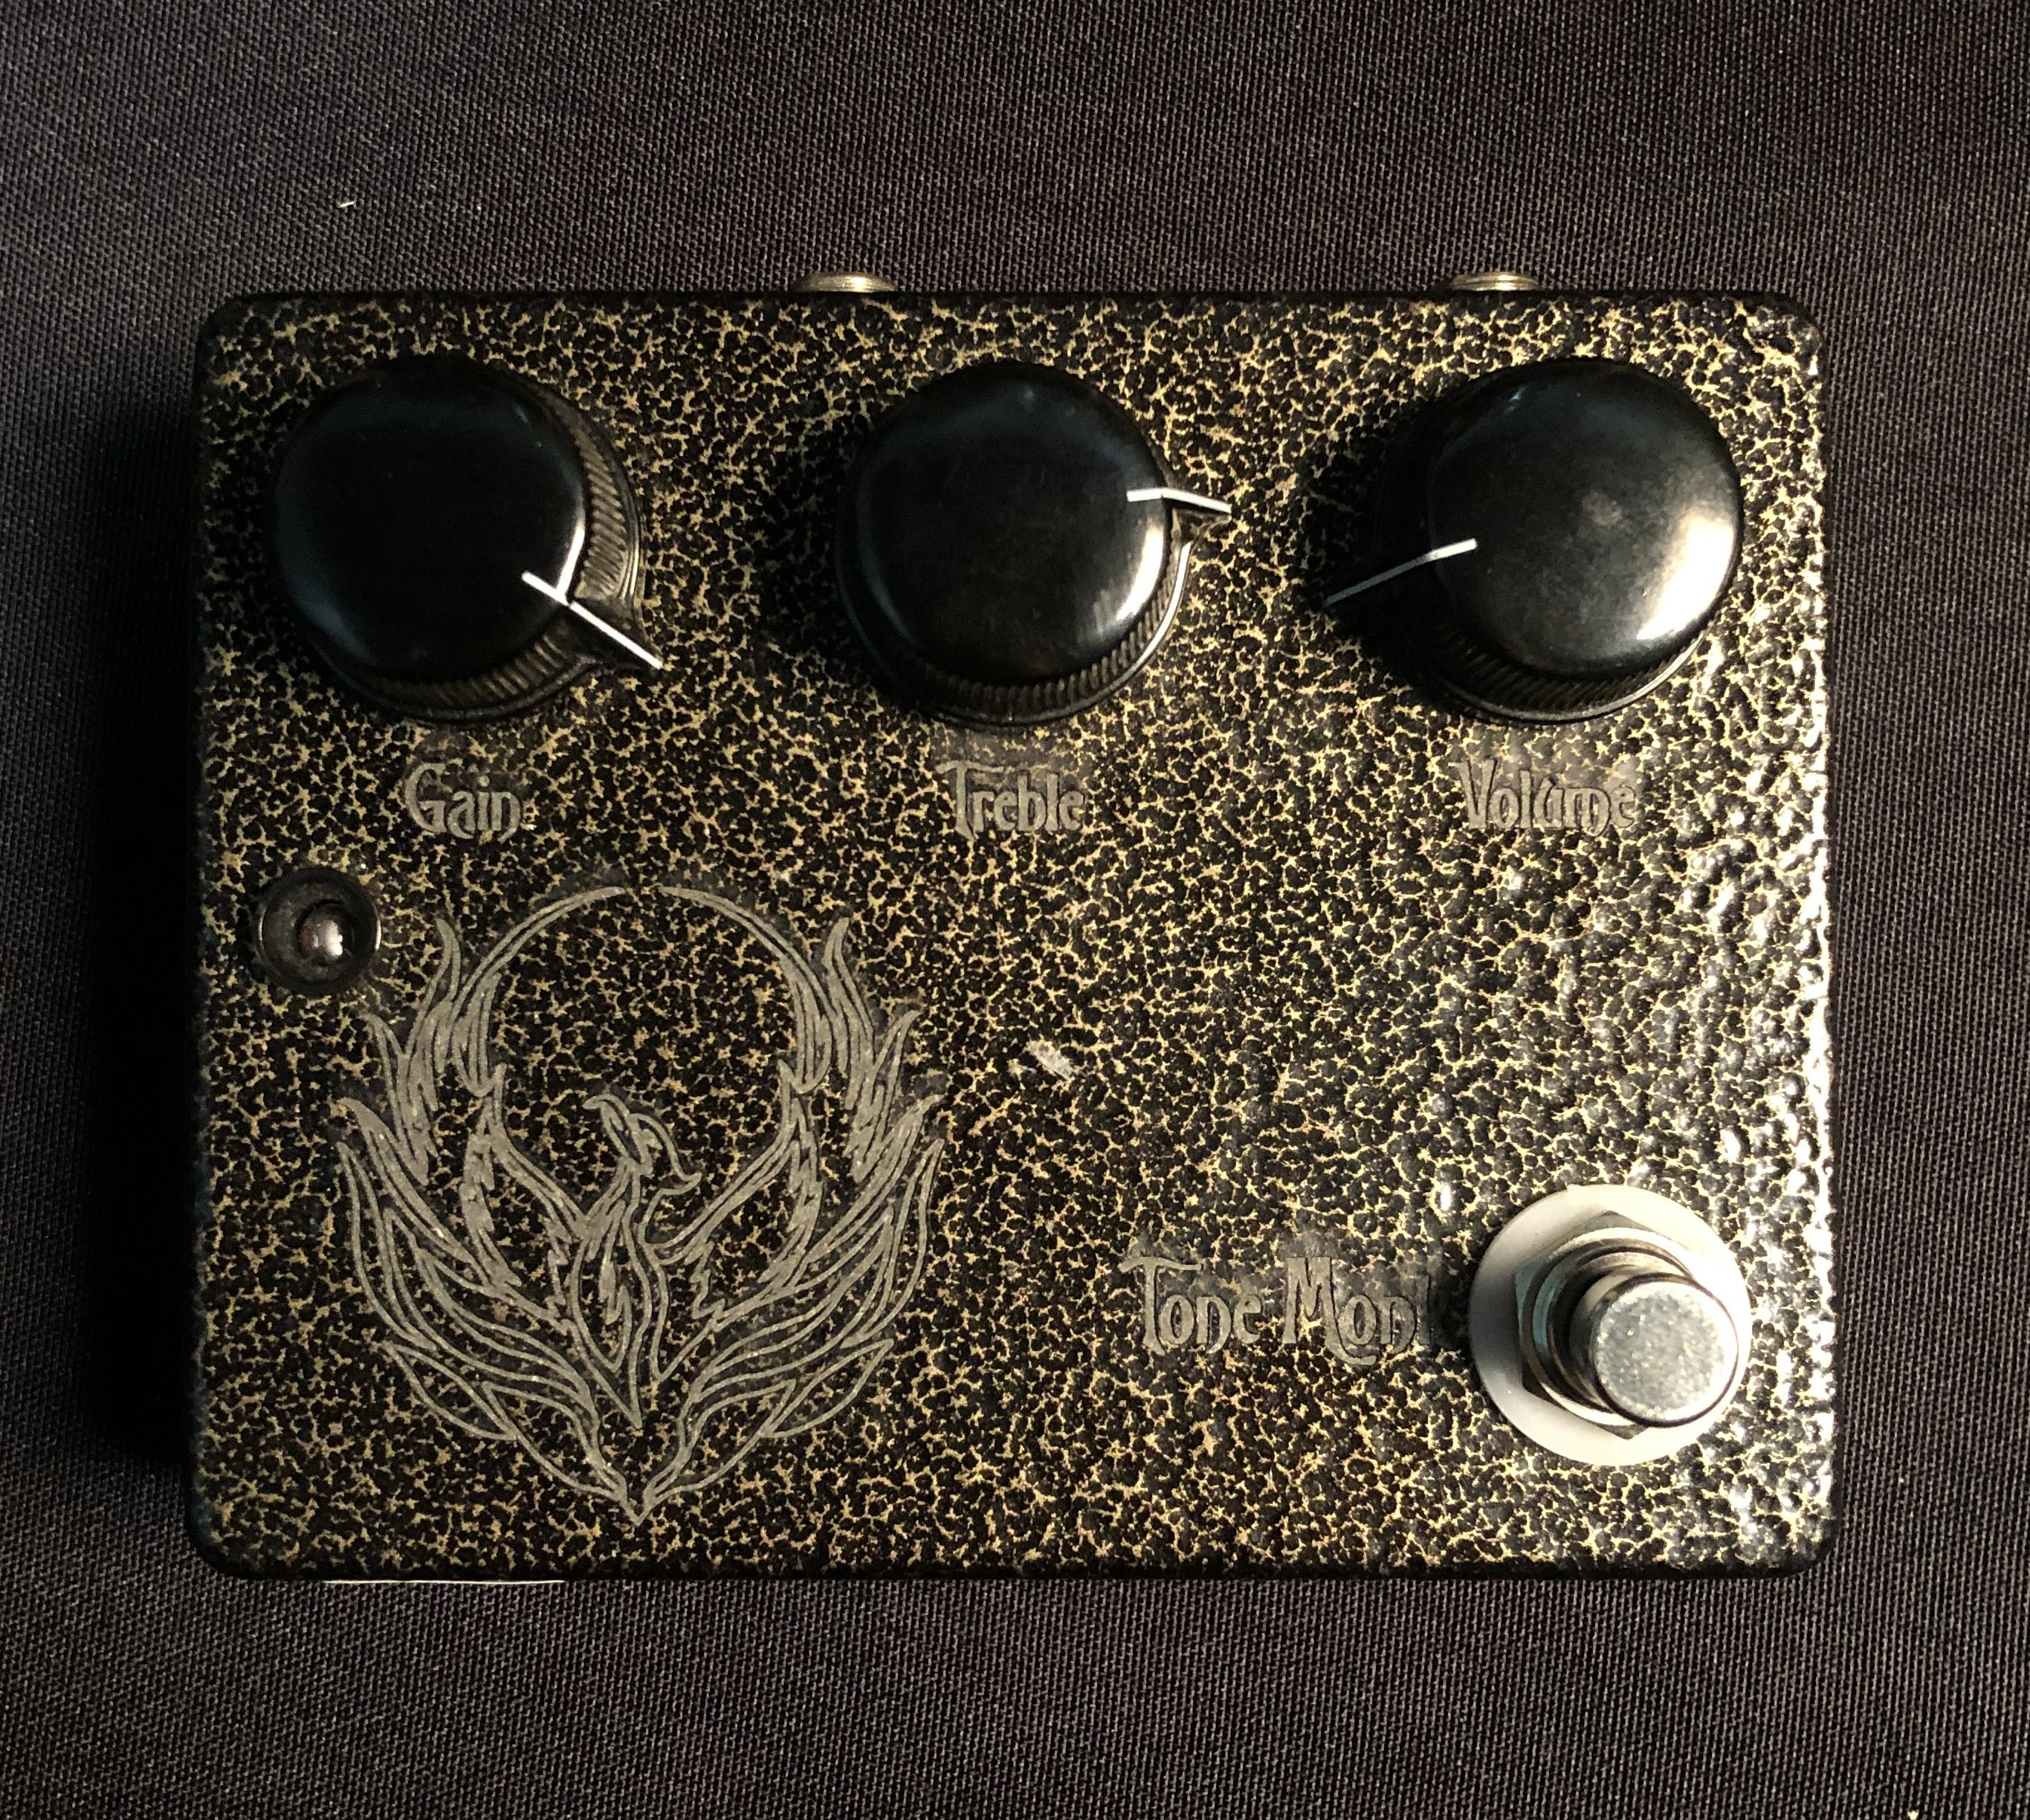 TONE MONK - Phoenix Gold Overdrive Pedal